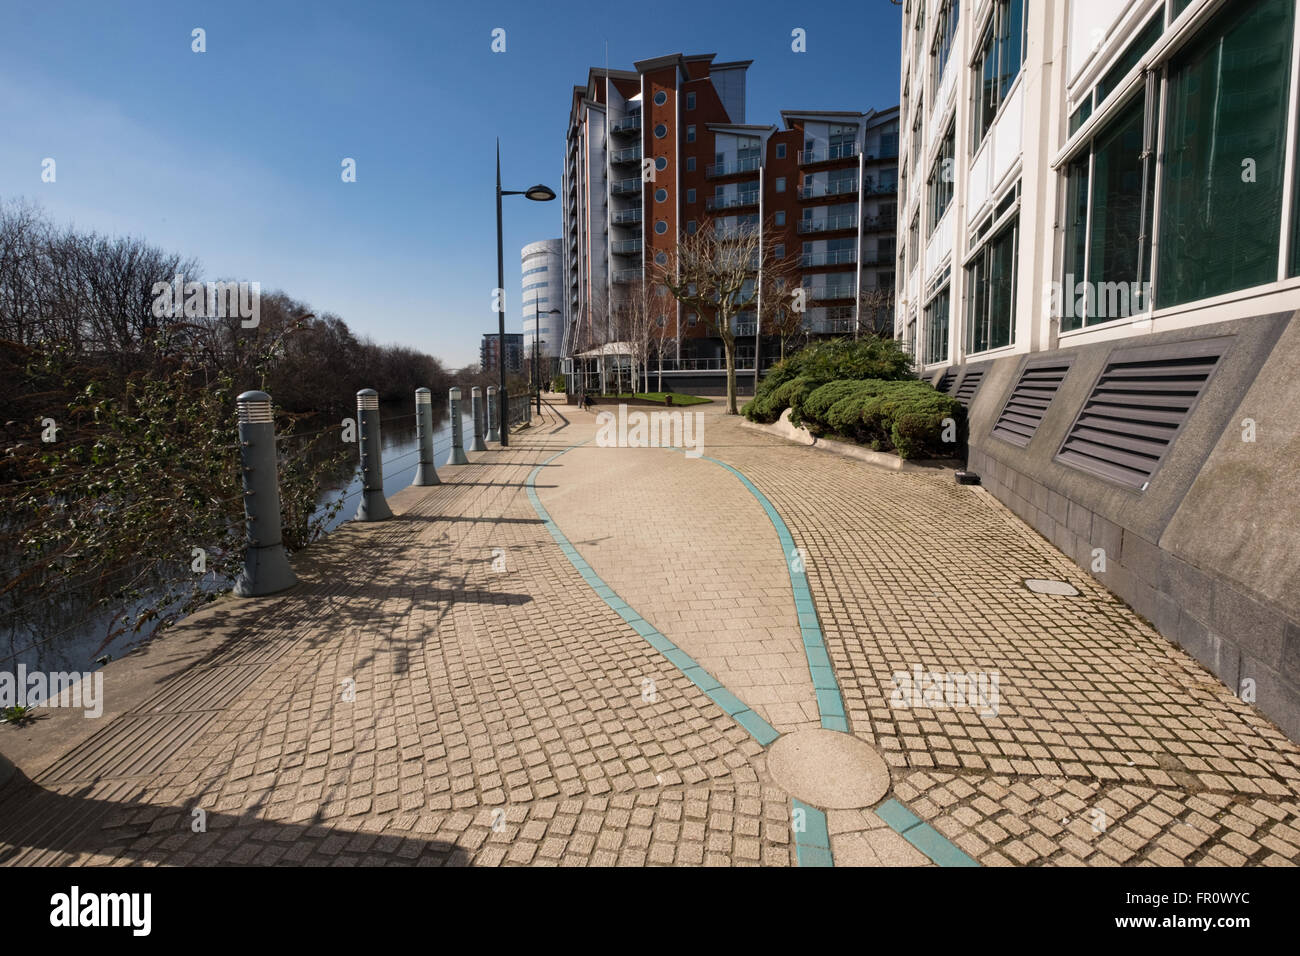 Leeds waterfront area - Stock Image